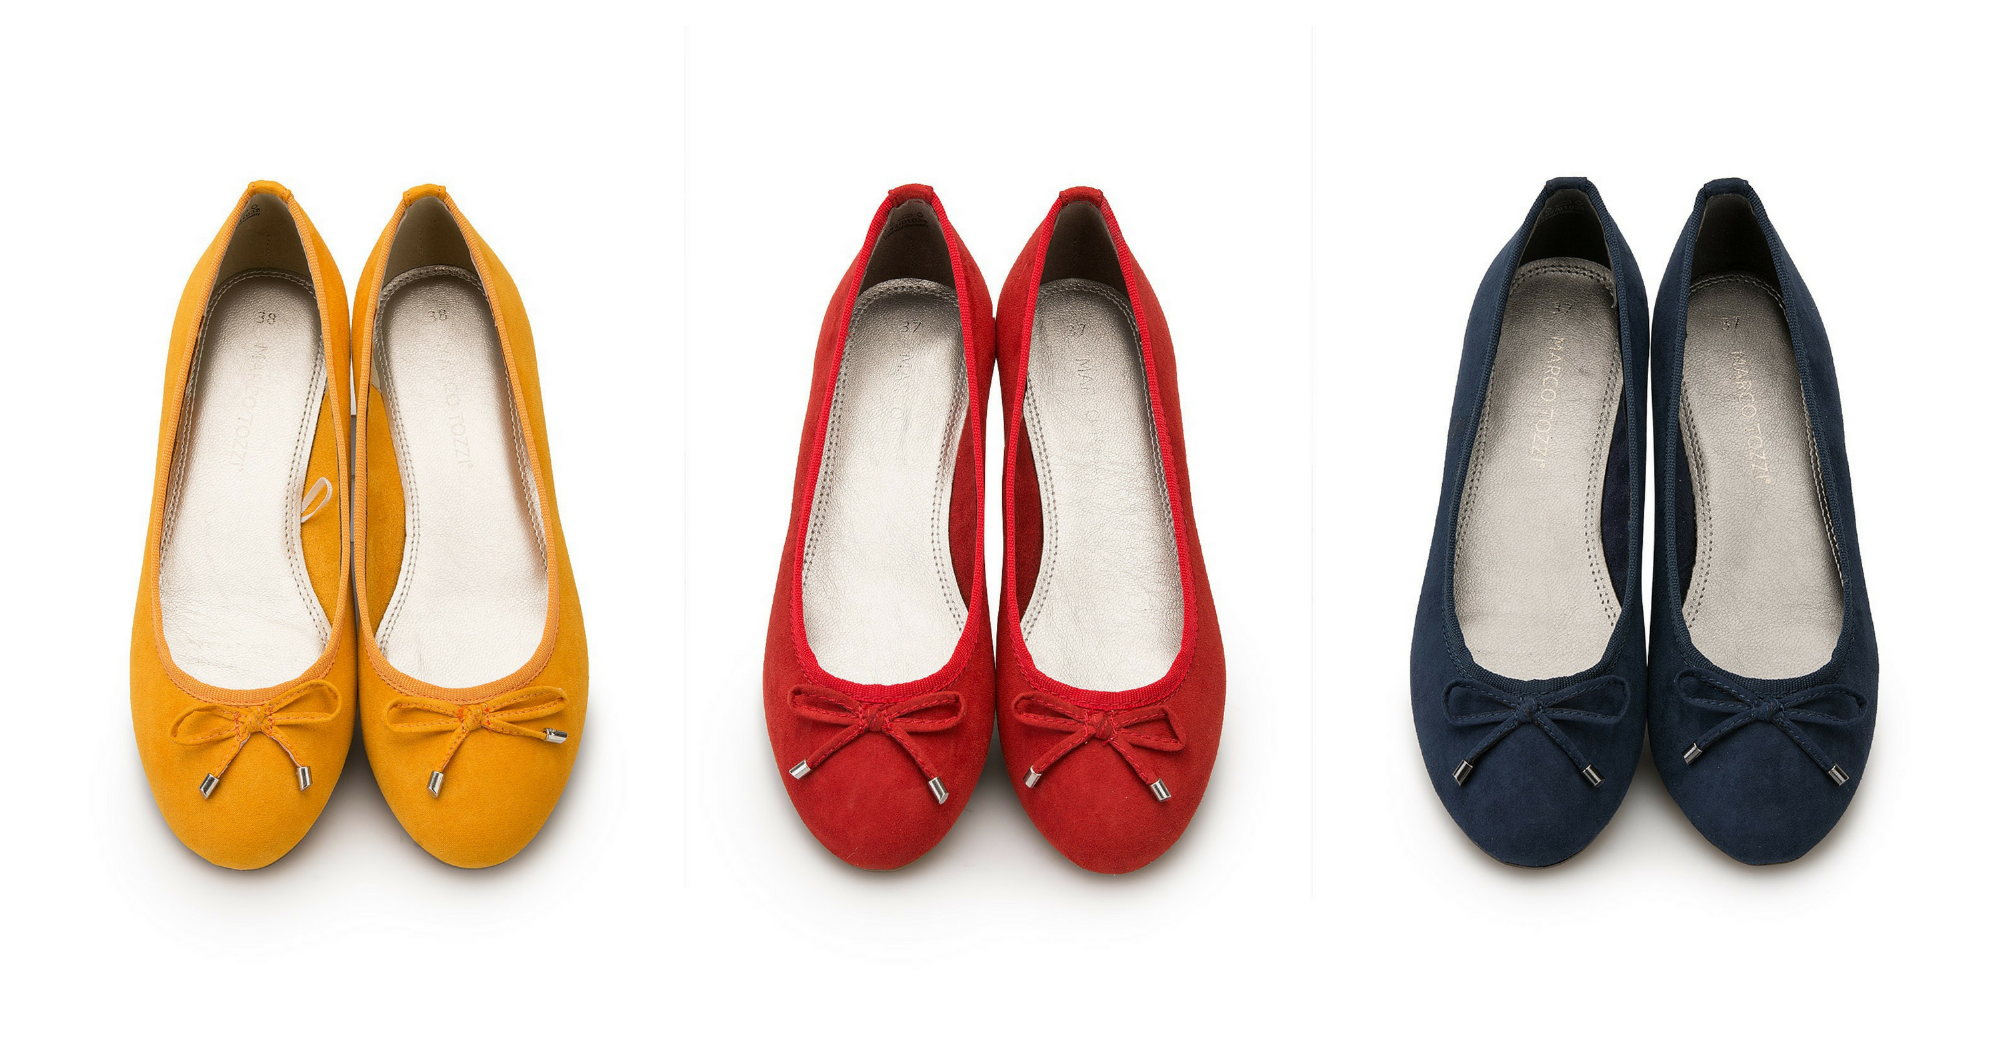 marco tozzie bow pumps yellow, red and navy blue